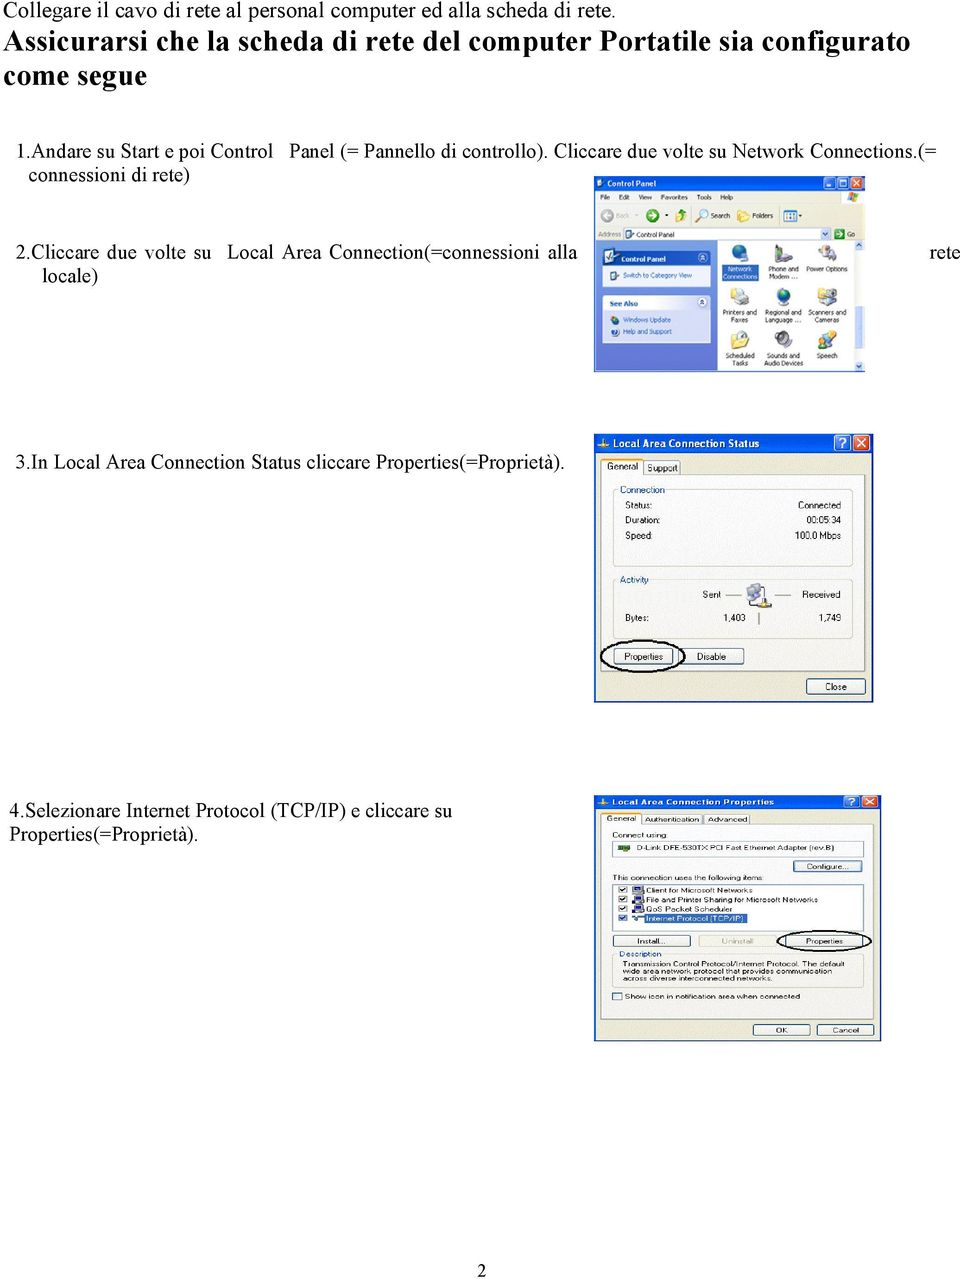 Andare su Start e poi Control Panel (= Pannello di controllo). Cliccare due volte su Network Connections.